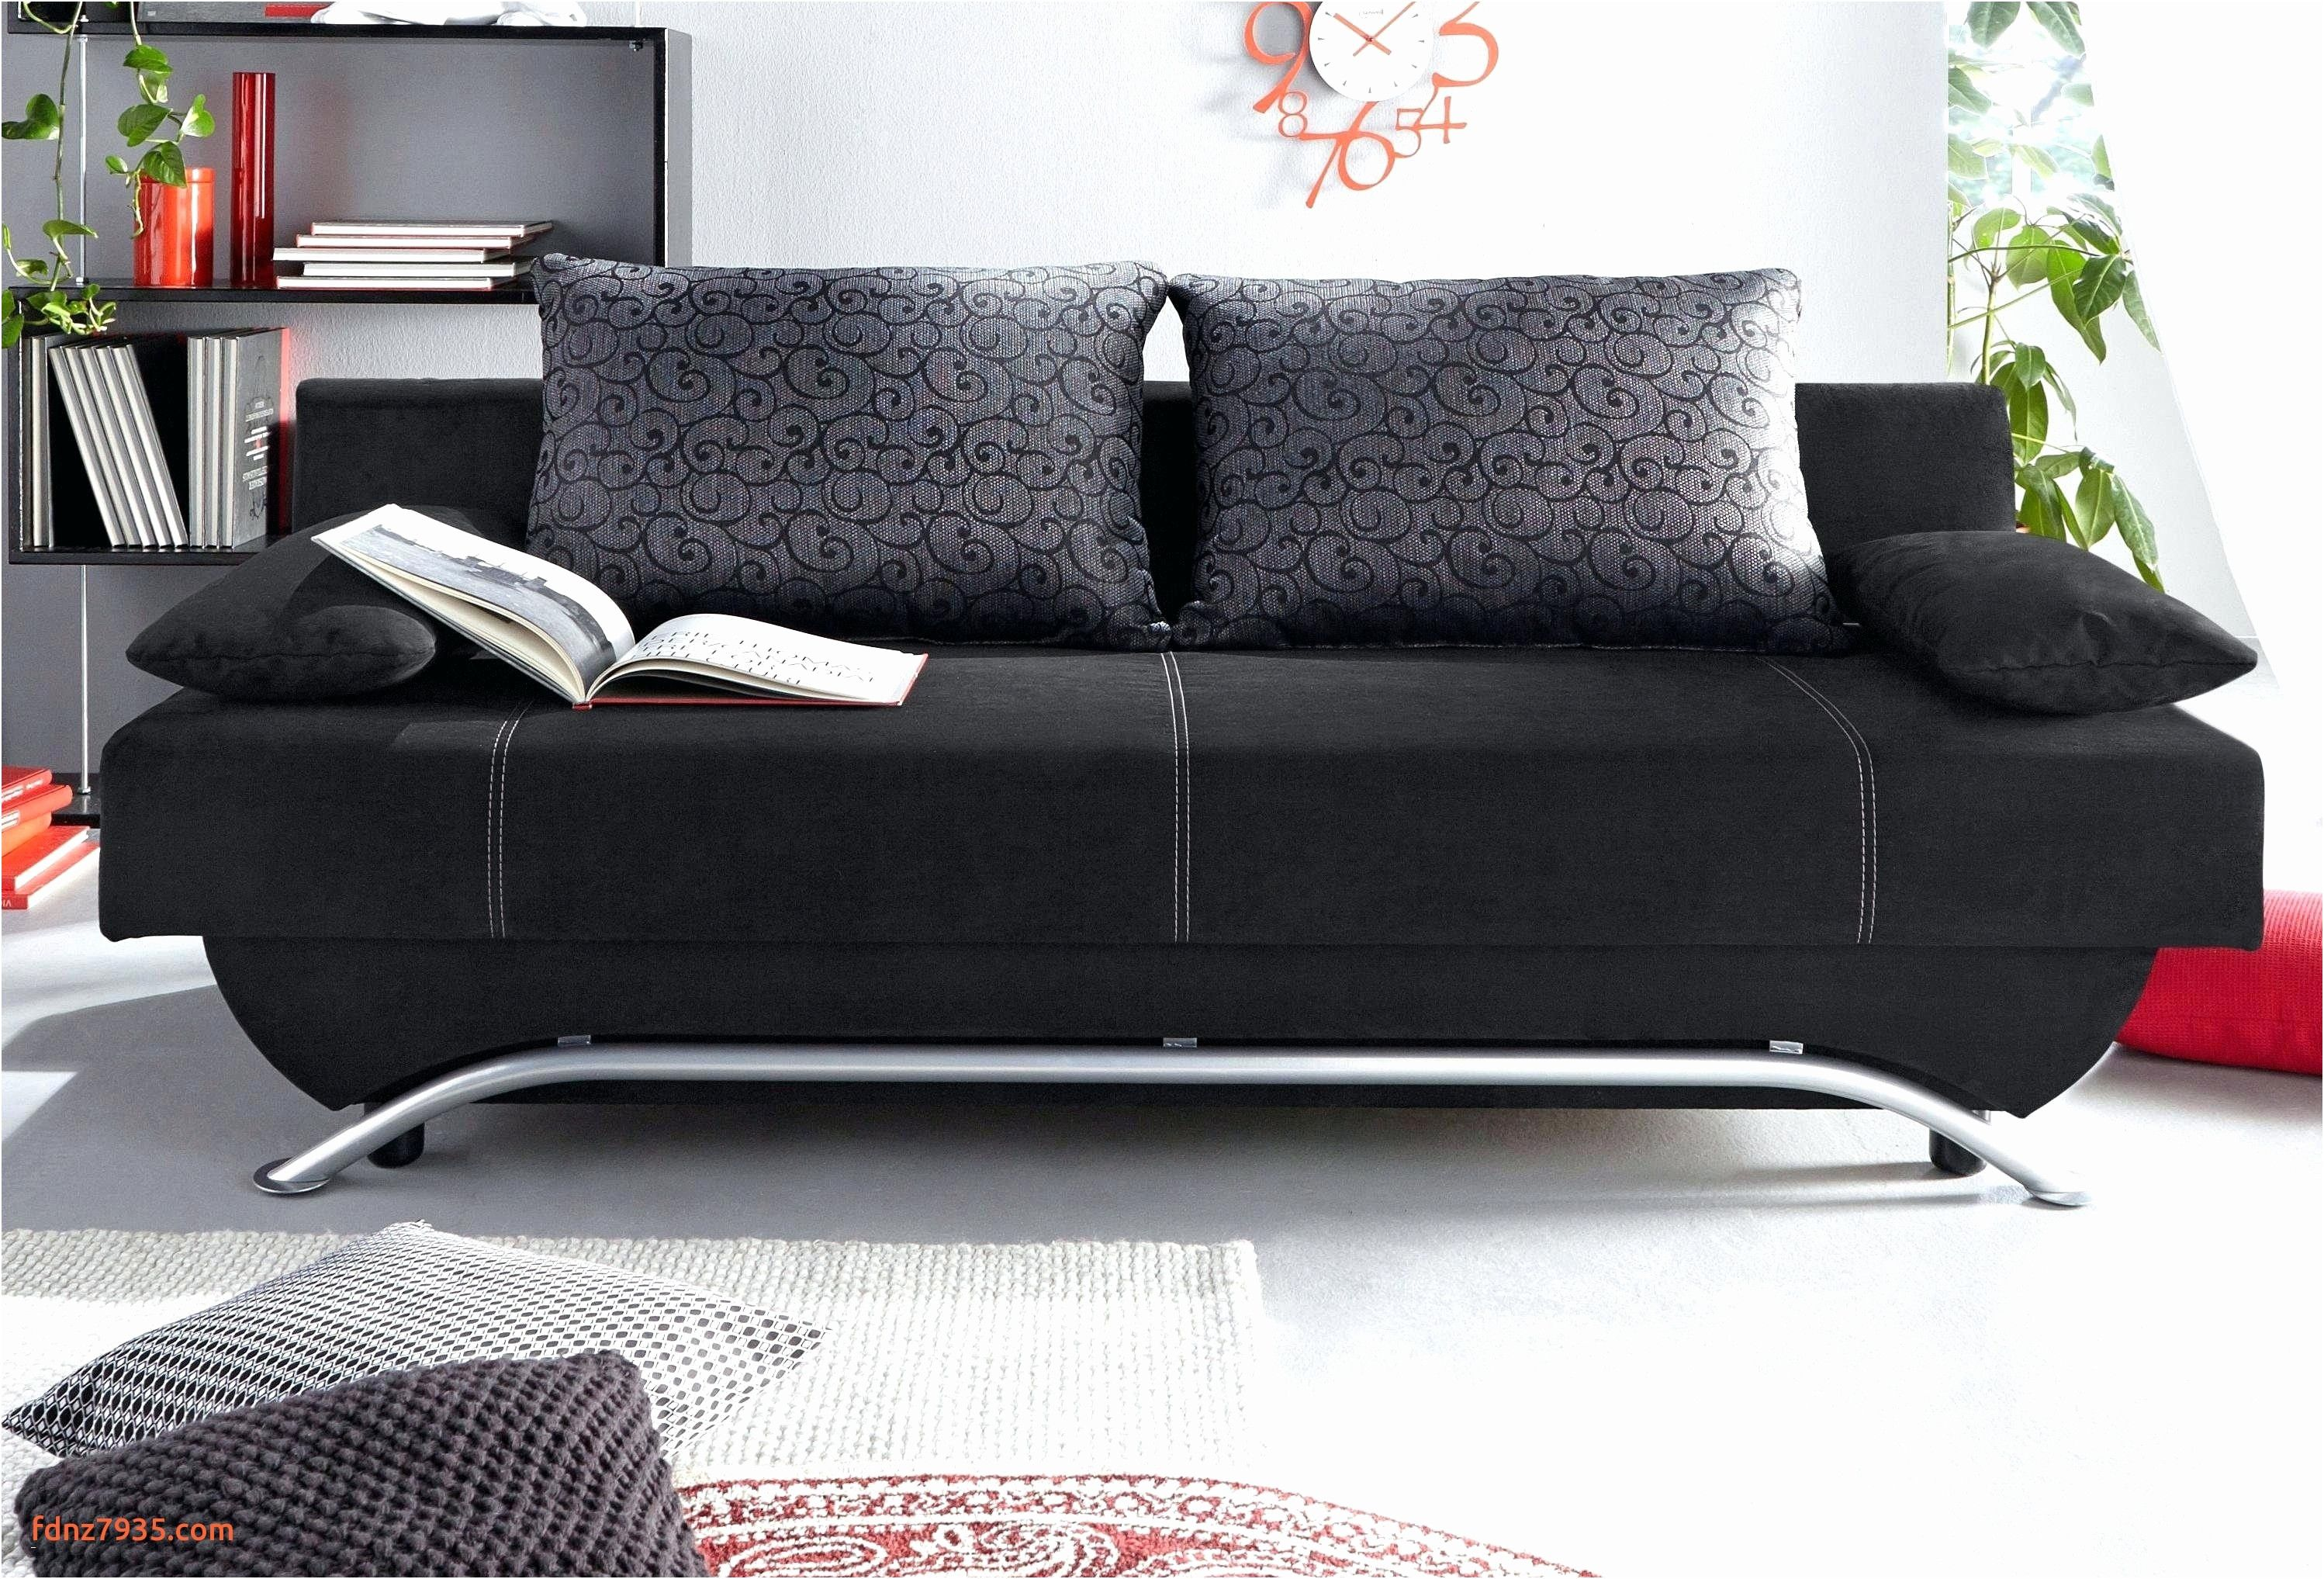 exklusiv couch mit relaxfunktion couch m bel schlafsofa sofa rh pinterest at